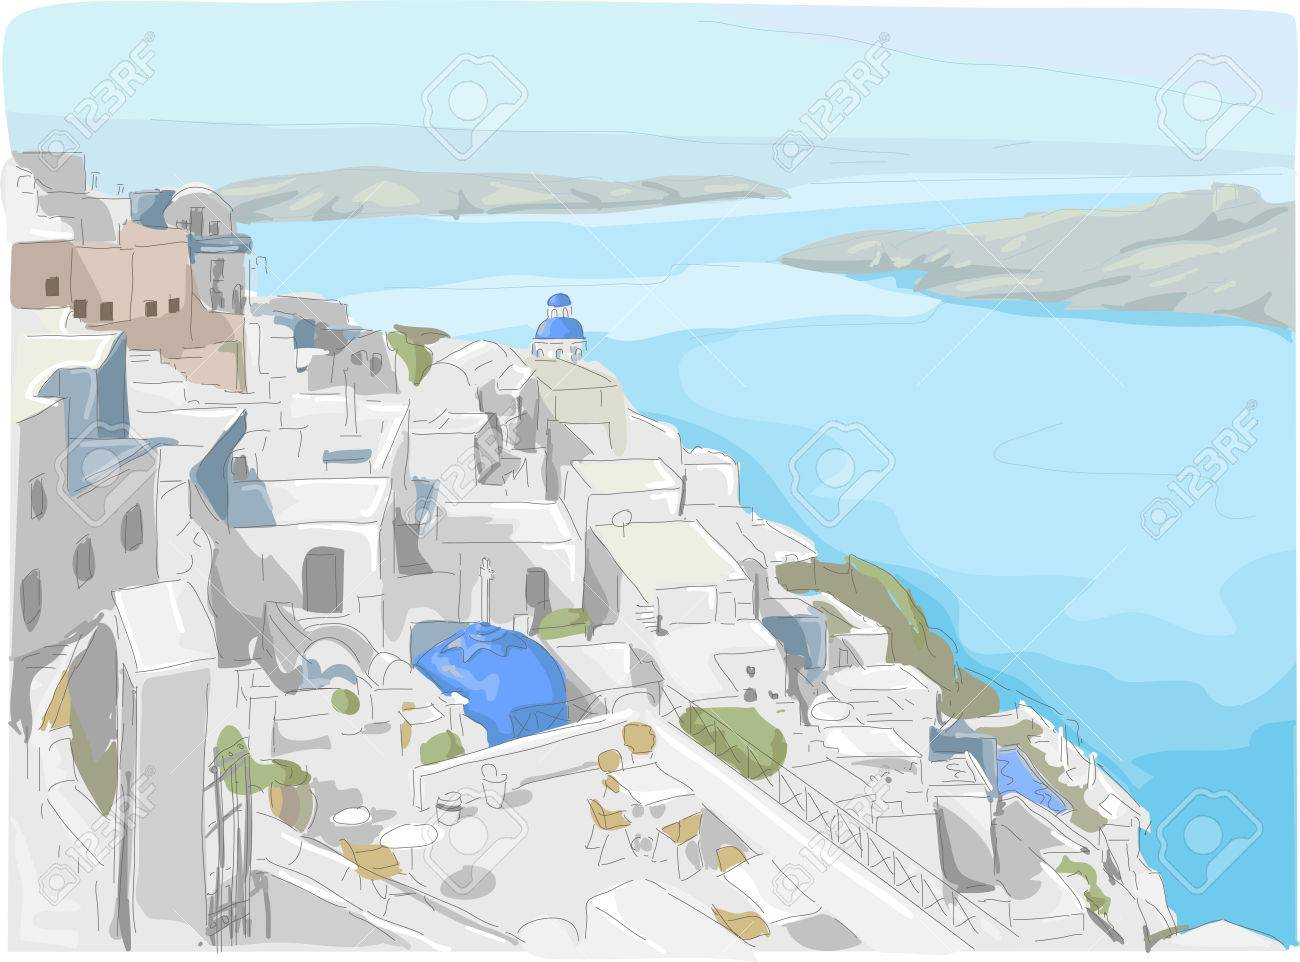 Illustration Featuring a View of Santorini Island in Greece Stock Illustration - 24226786